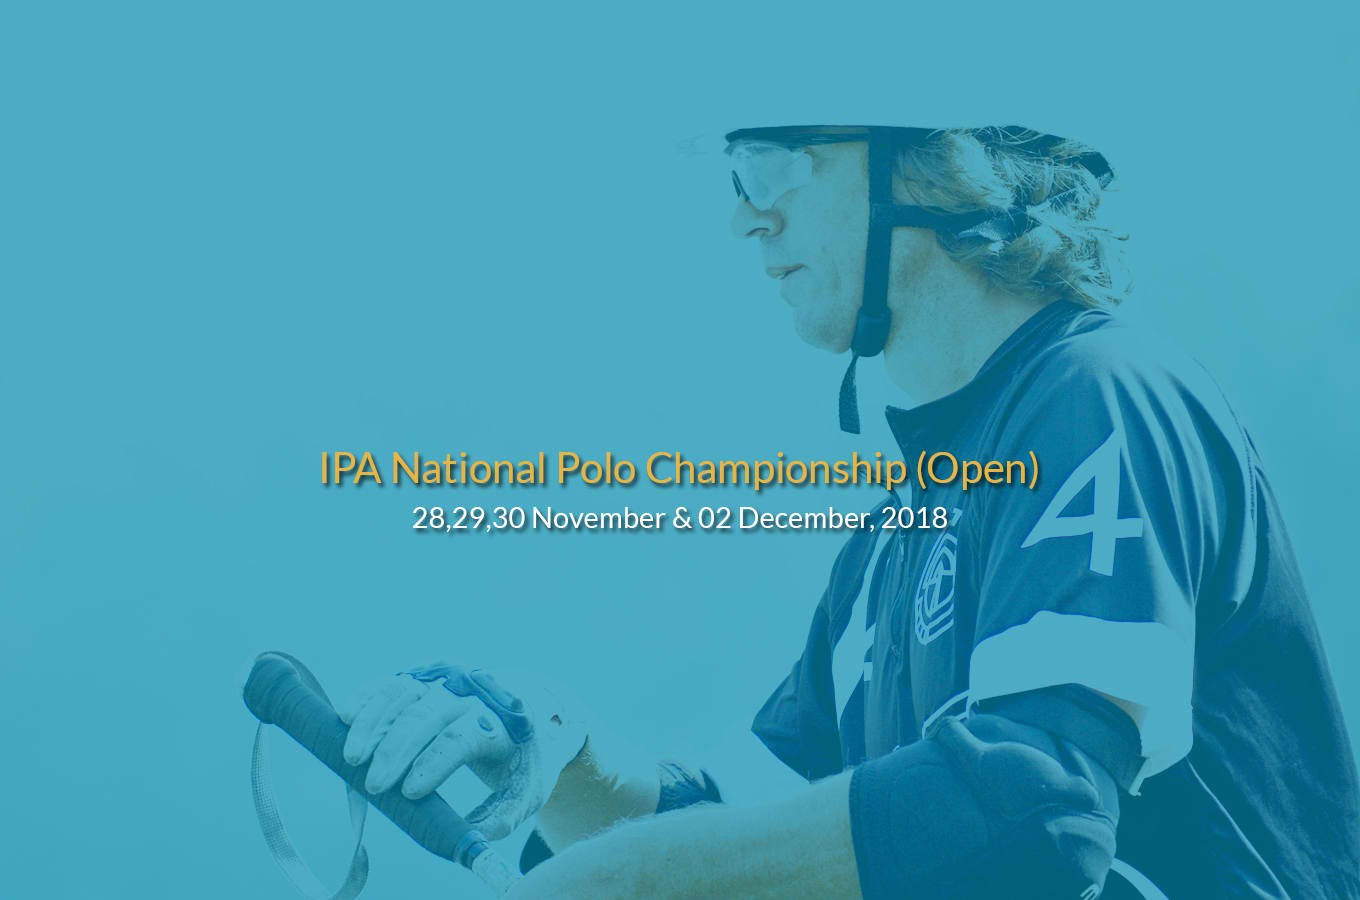 IPA National Polo Championship